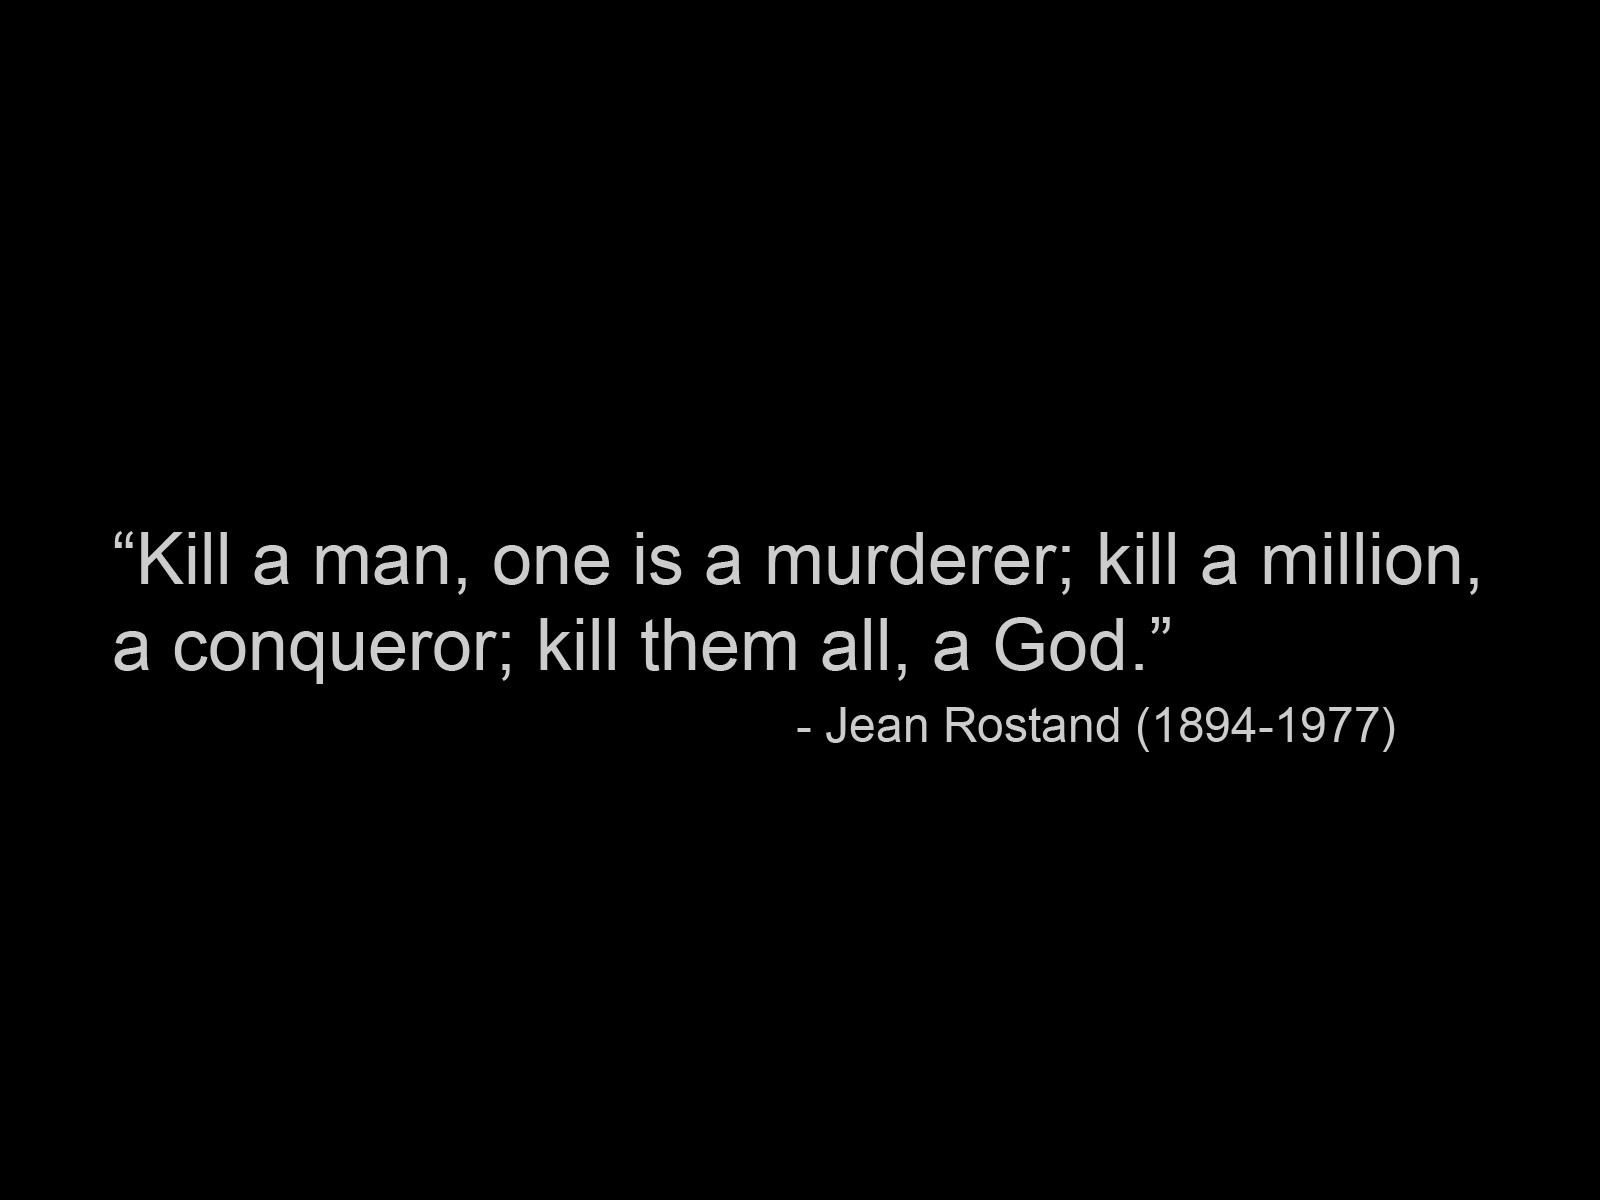 Quotes Jean Rostand text HD Wallpaper